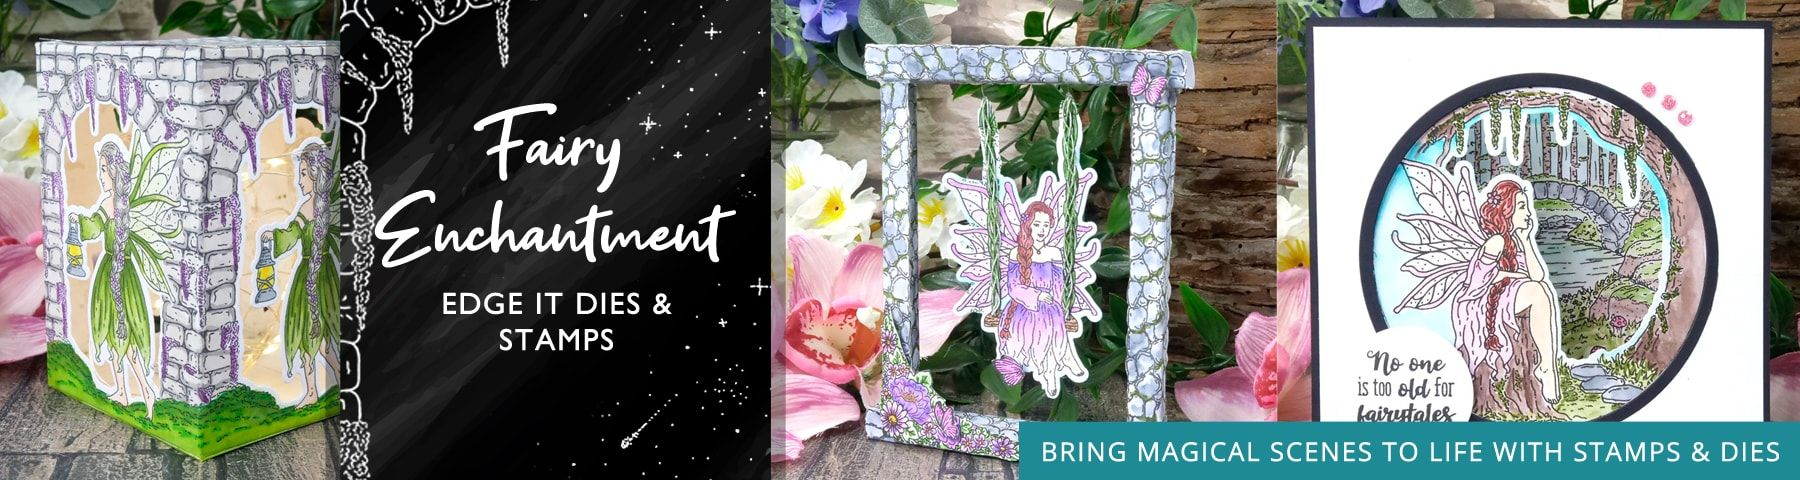 Fairy Enchantment Stamps and Dies